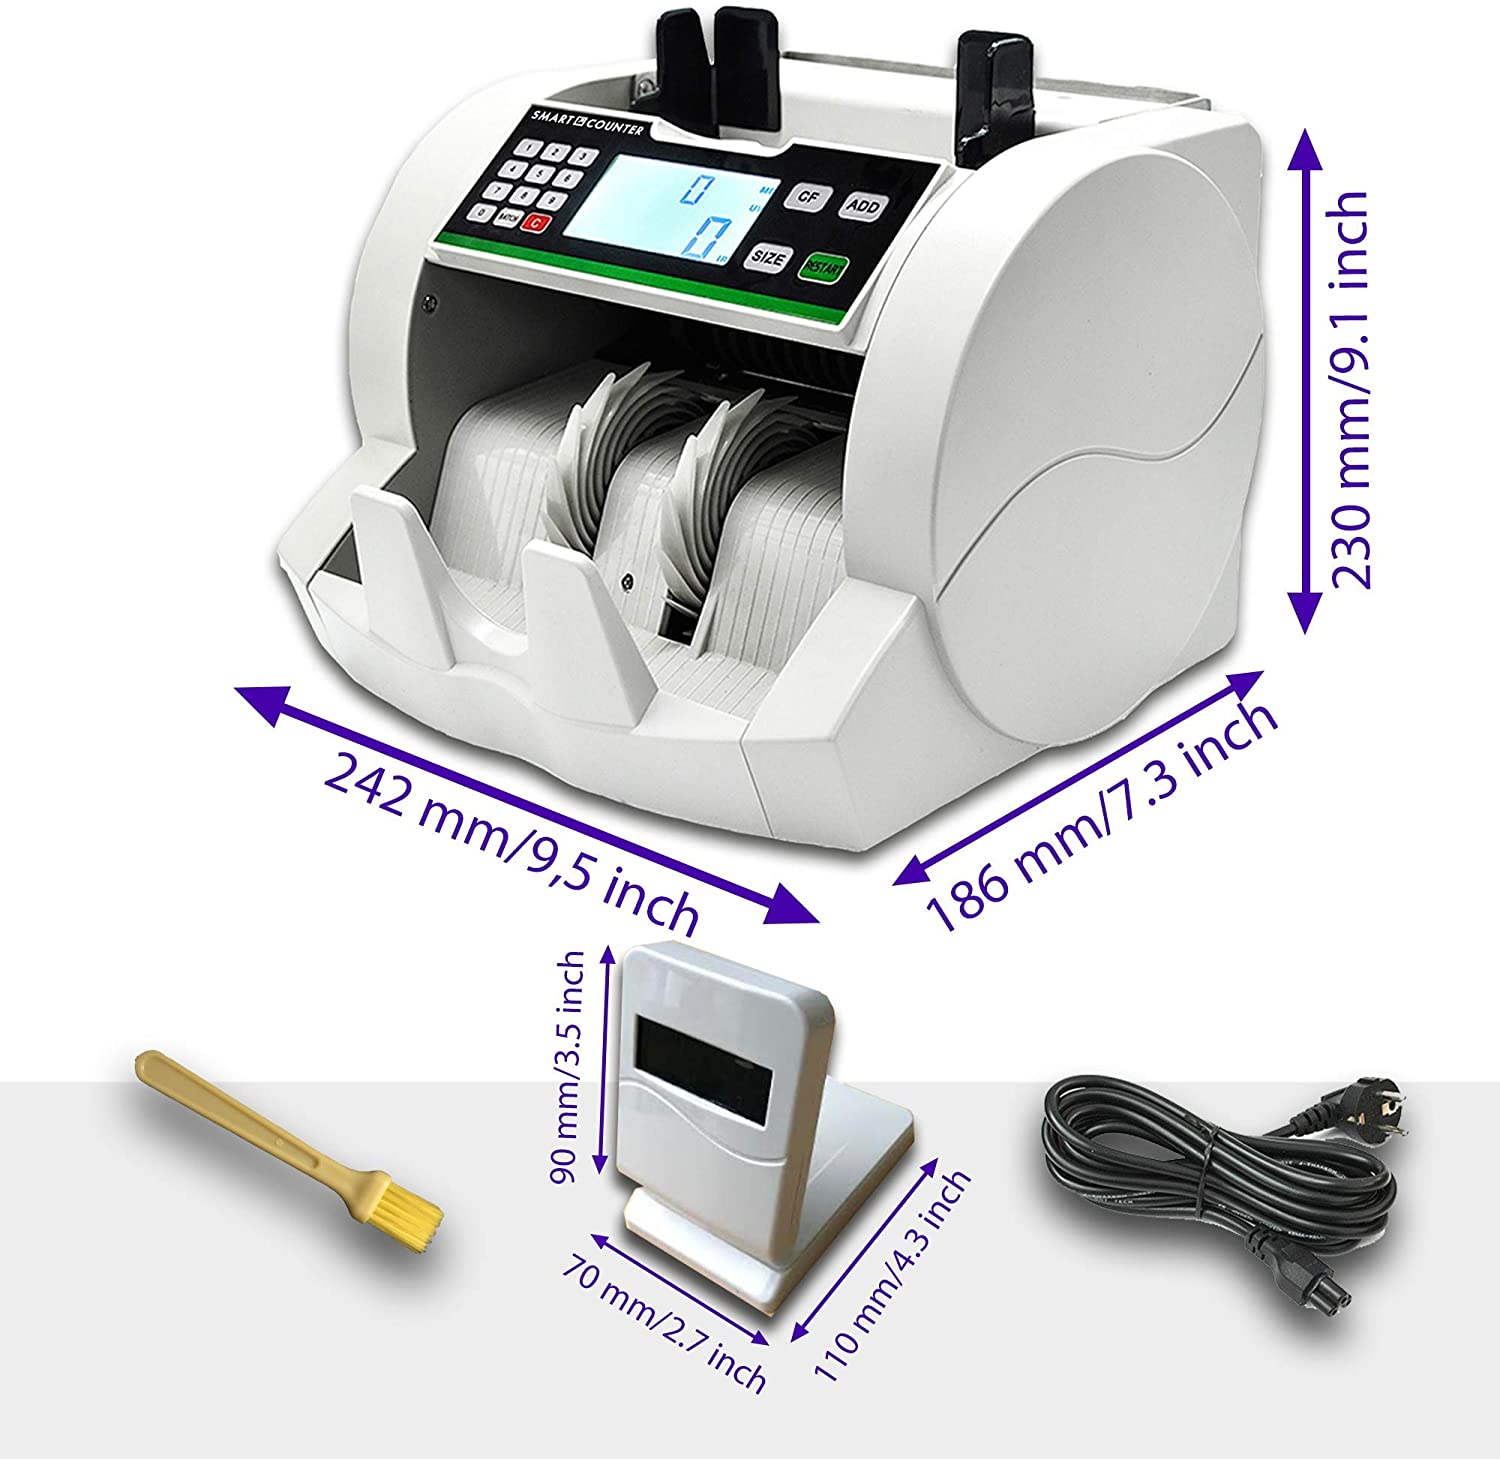 Money Counter - Counts Number of Bills NOT monetary Total - UV/MG/IR Counterfeit Bill Detection - Cash Counting Machine